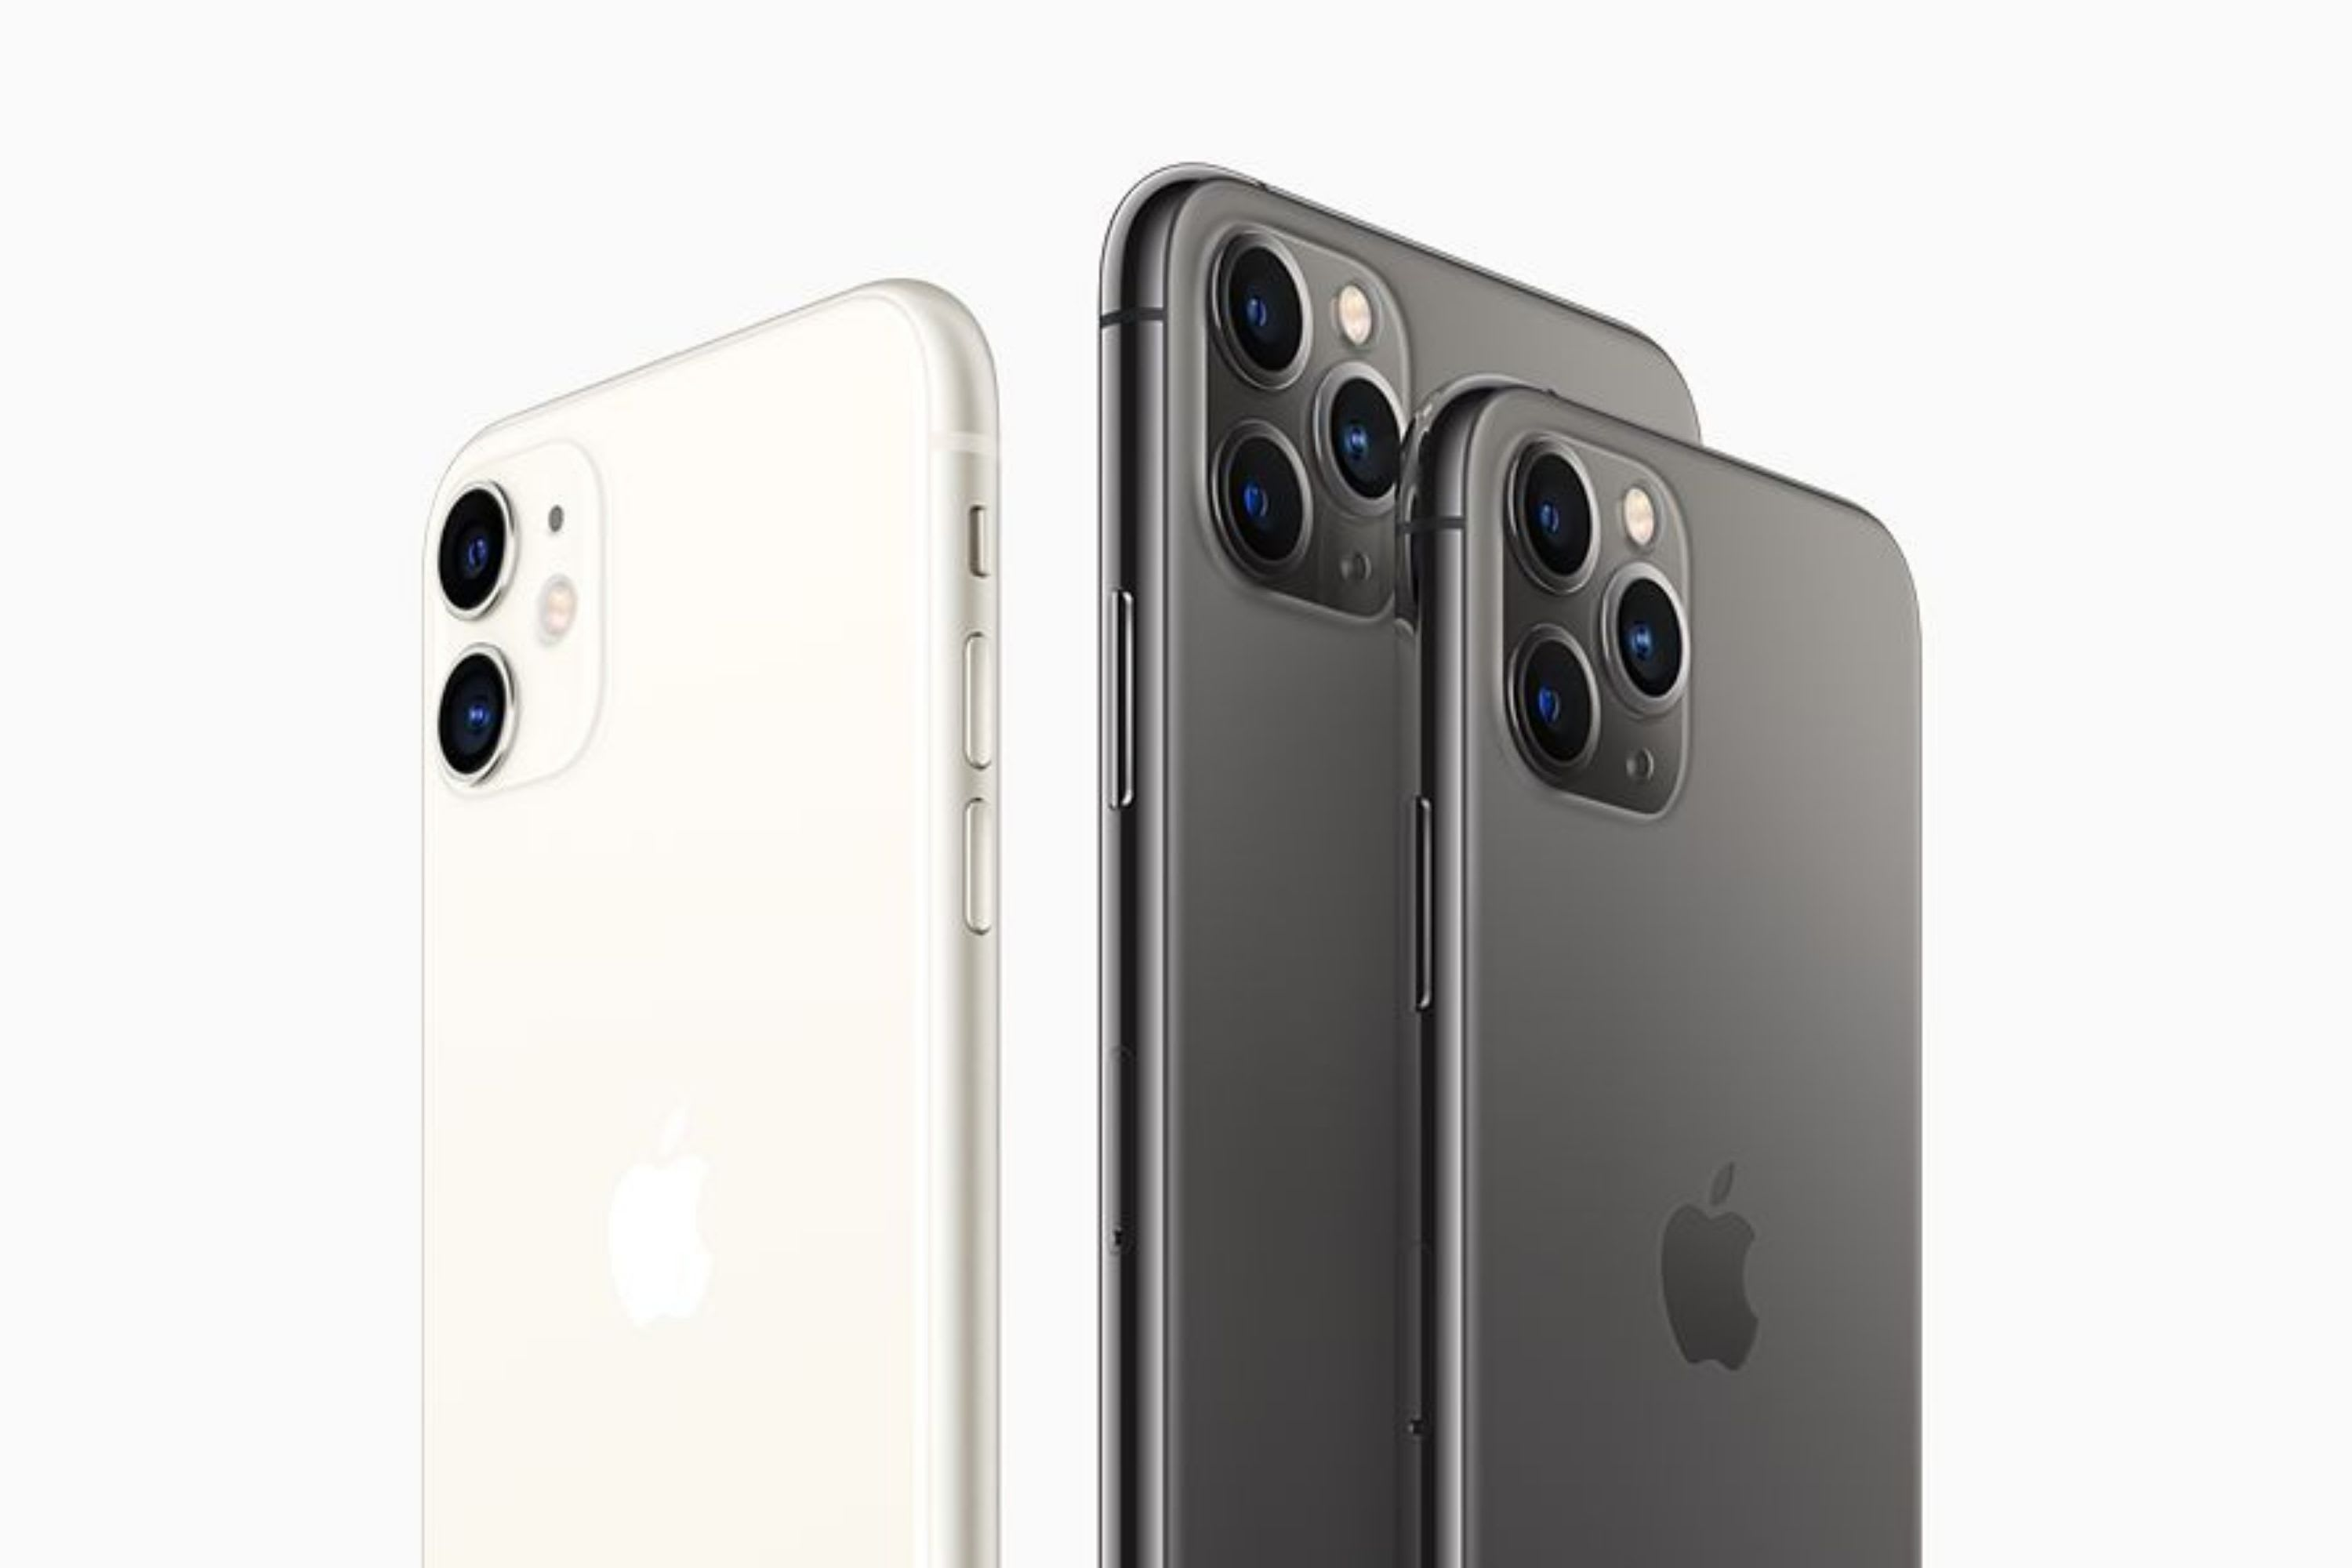 will-the-iphone-12-be-mentioned-at-apple-s-event-on-september-15-what-we-know-so-far-2020909-1